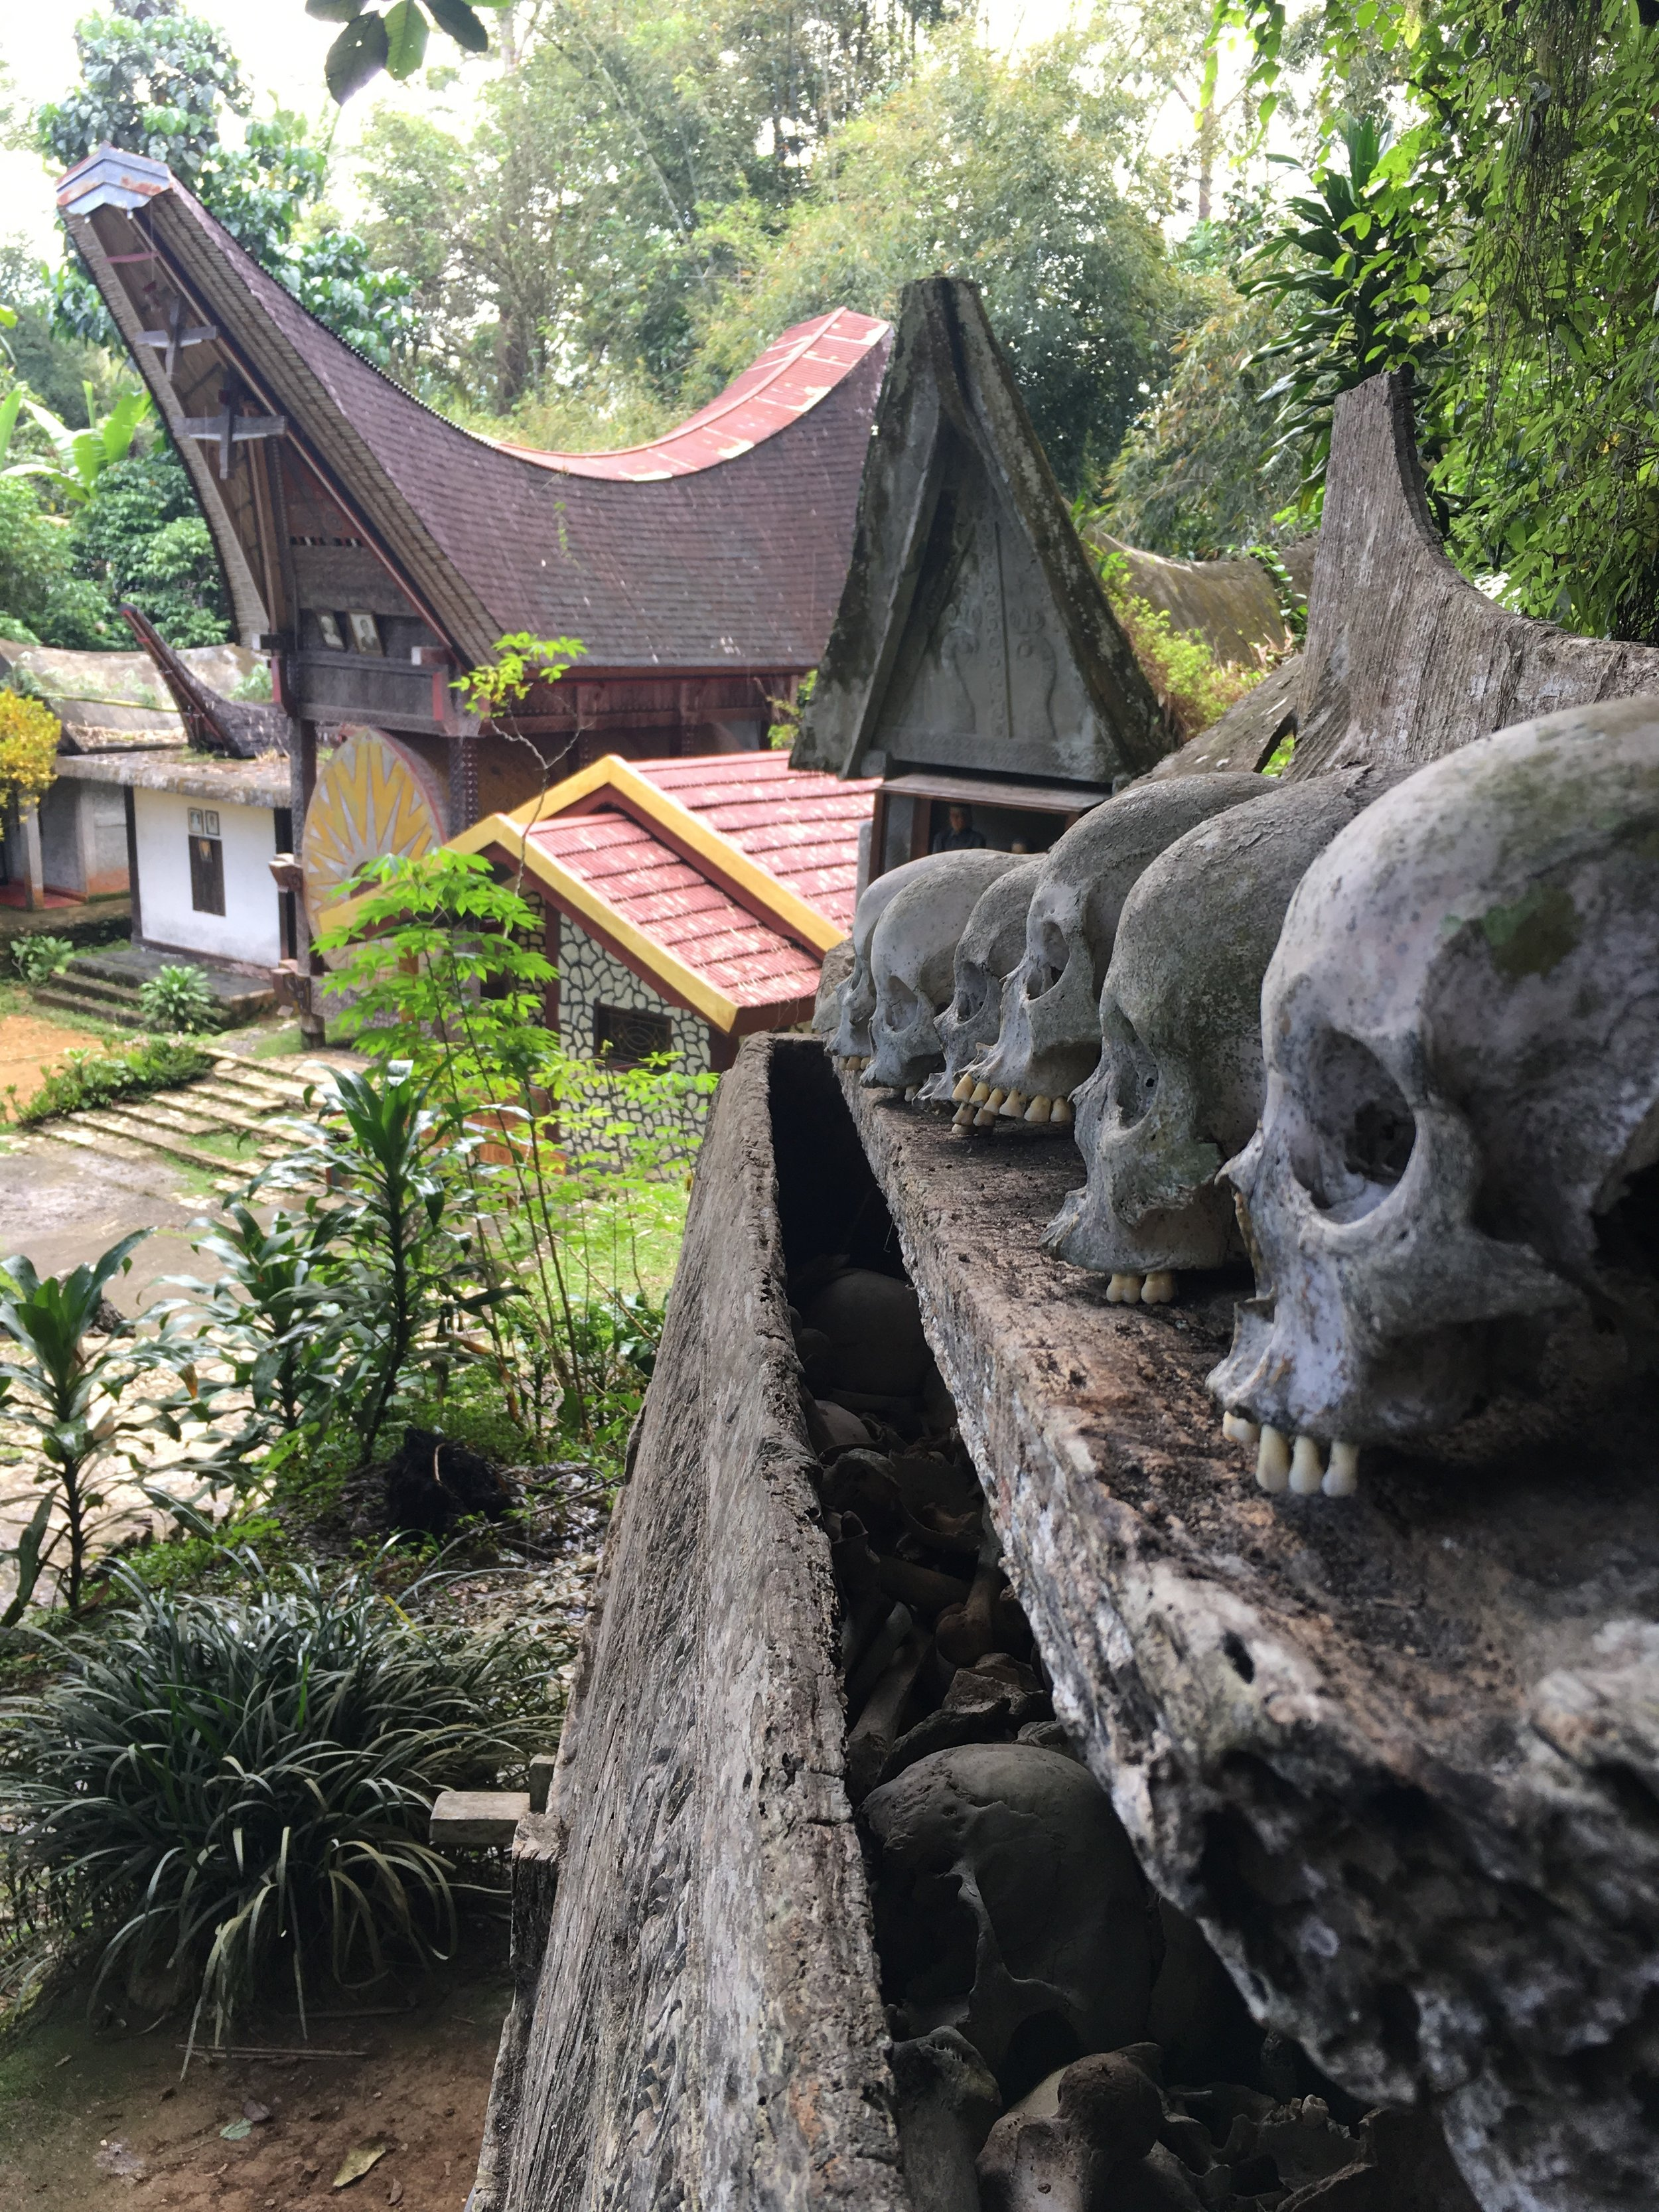 A Bloody, Morbid, and Hospitable Experience in Tana Toraja